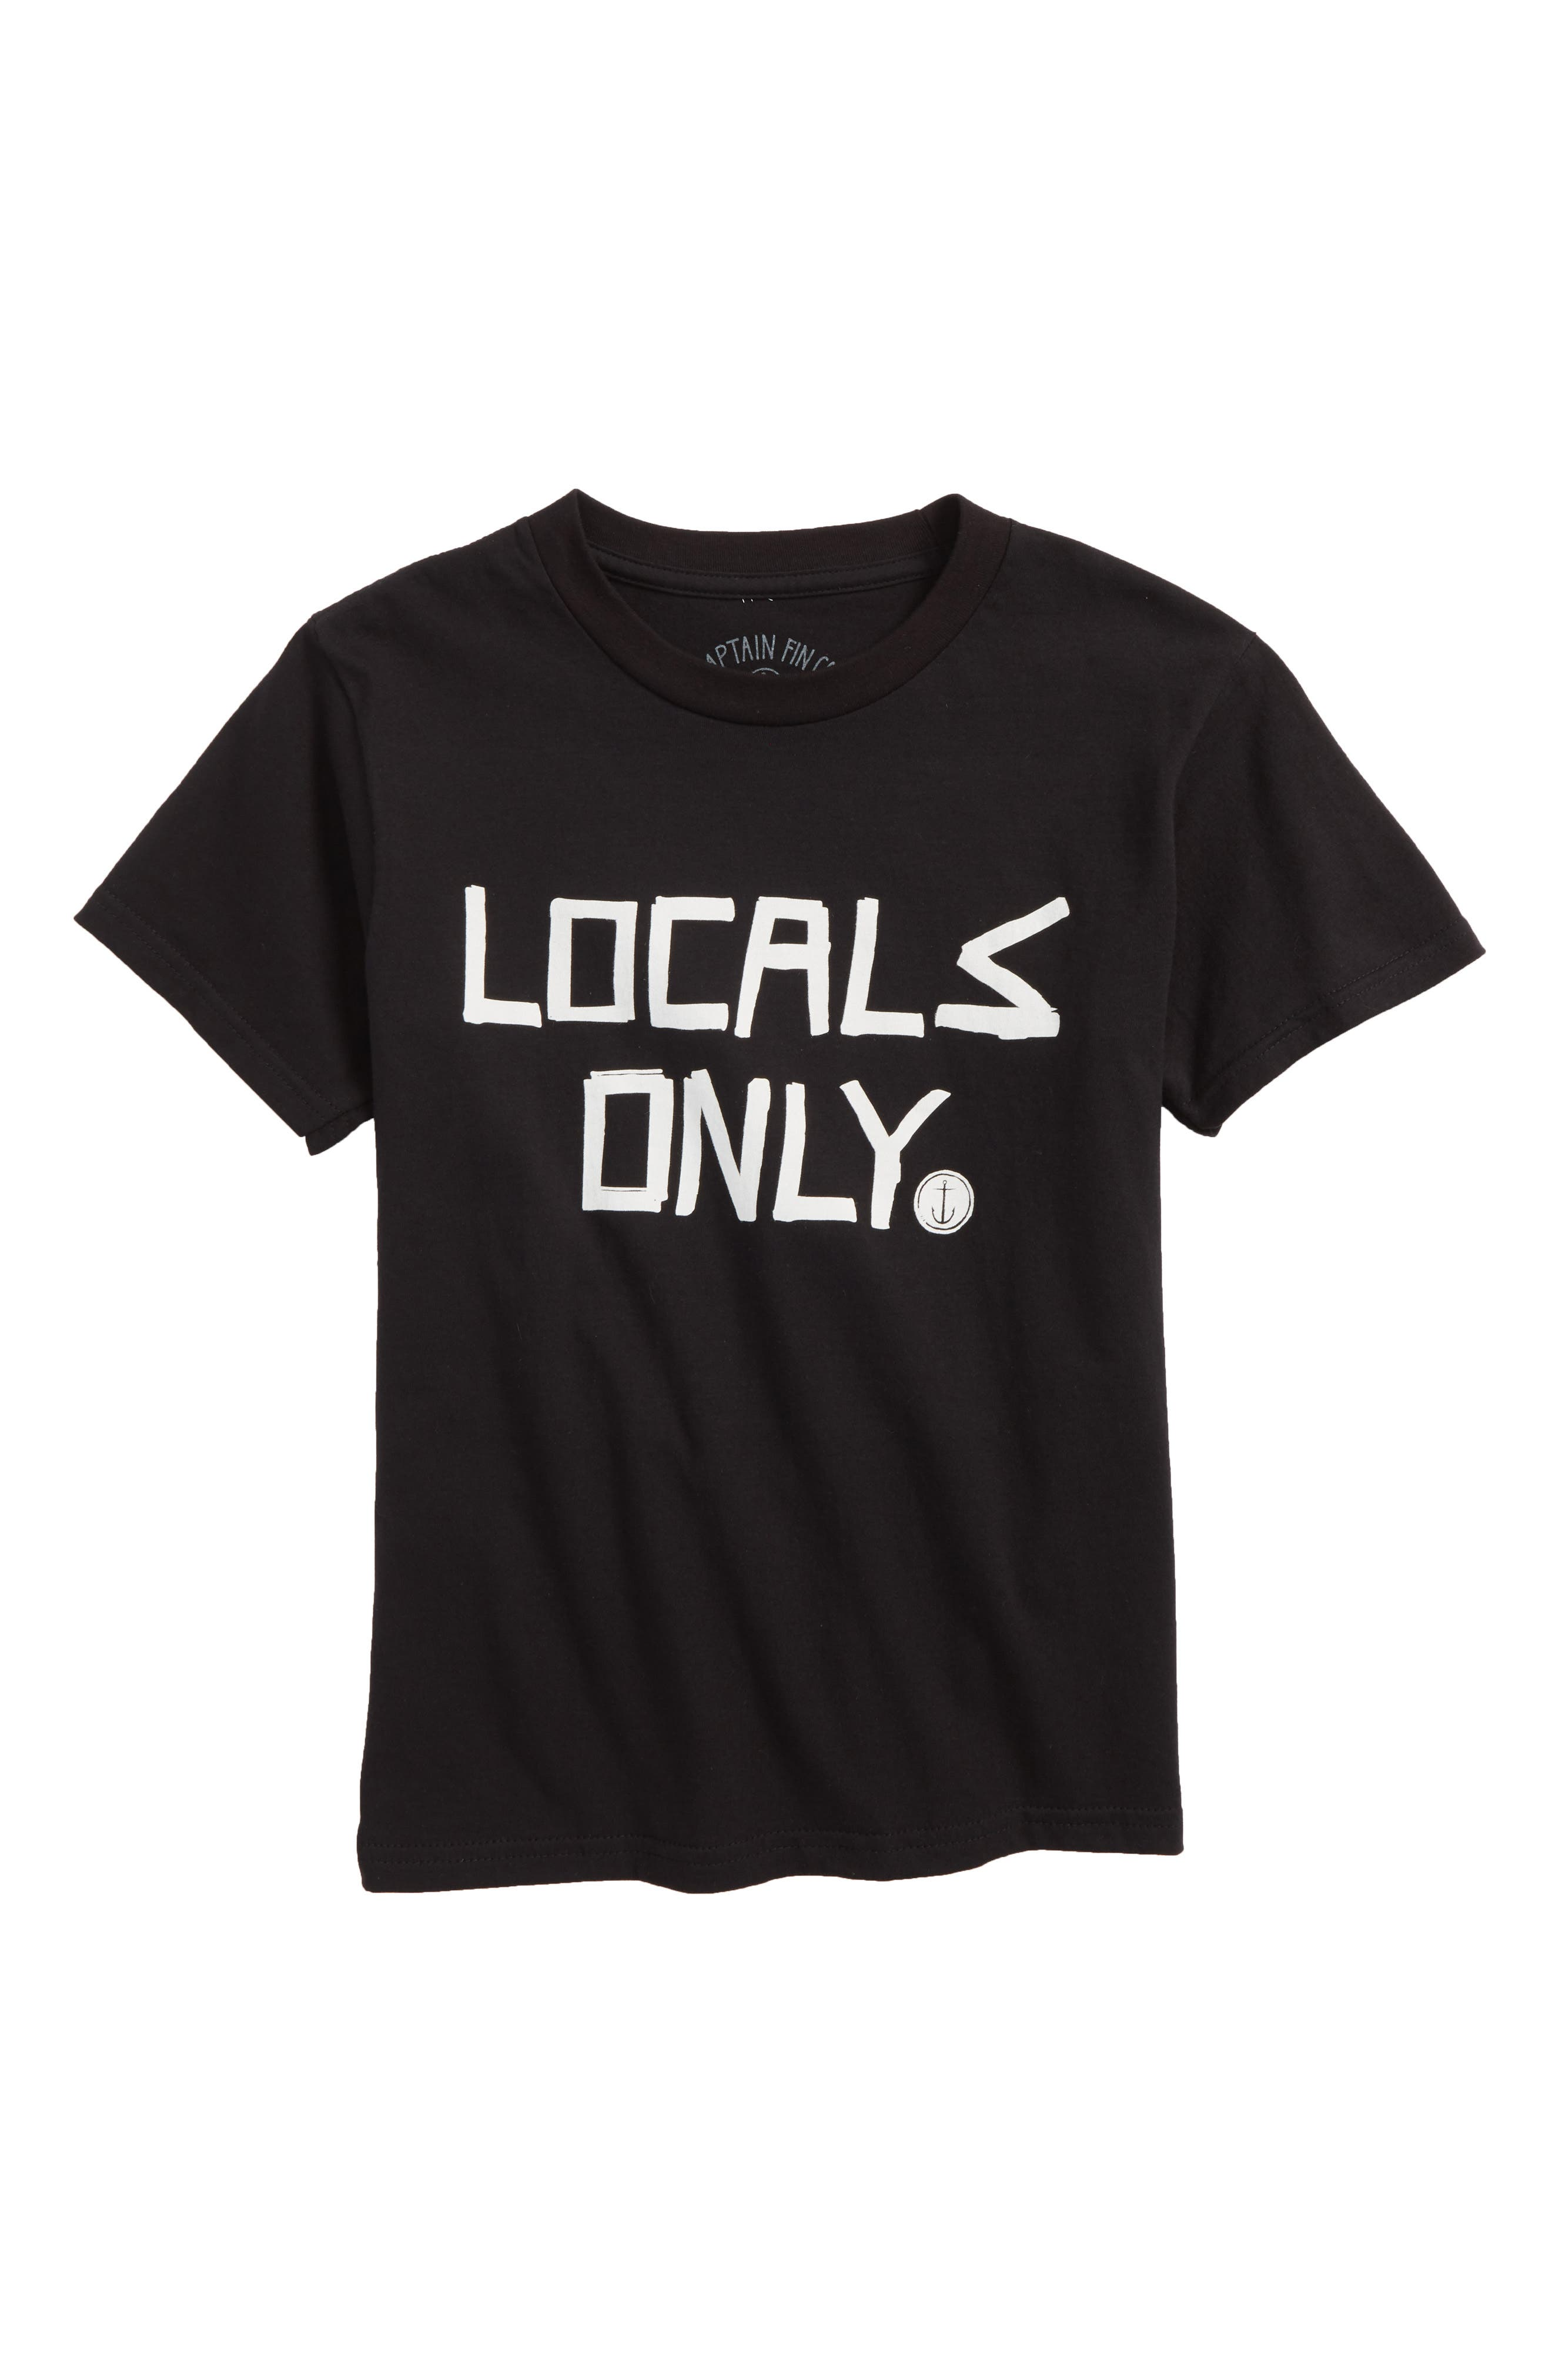 Main Image - Captain Fin Locals Only T-Shirt (Big Boys)